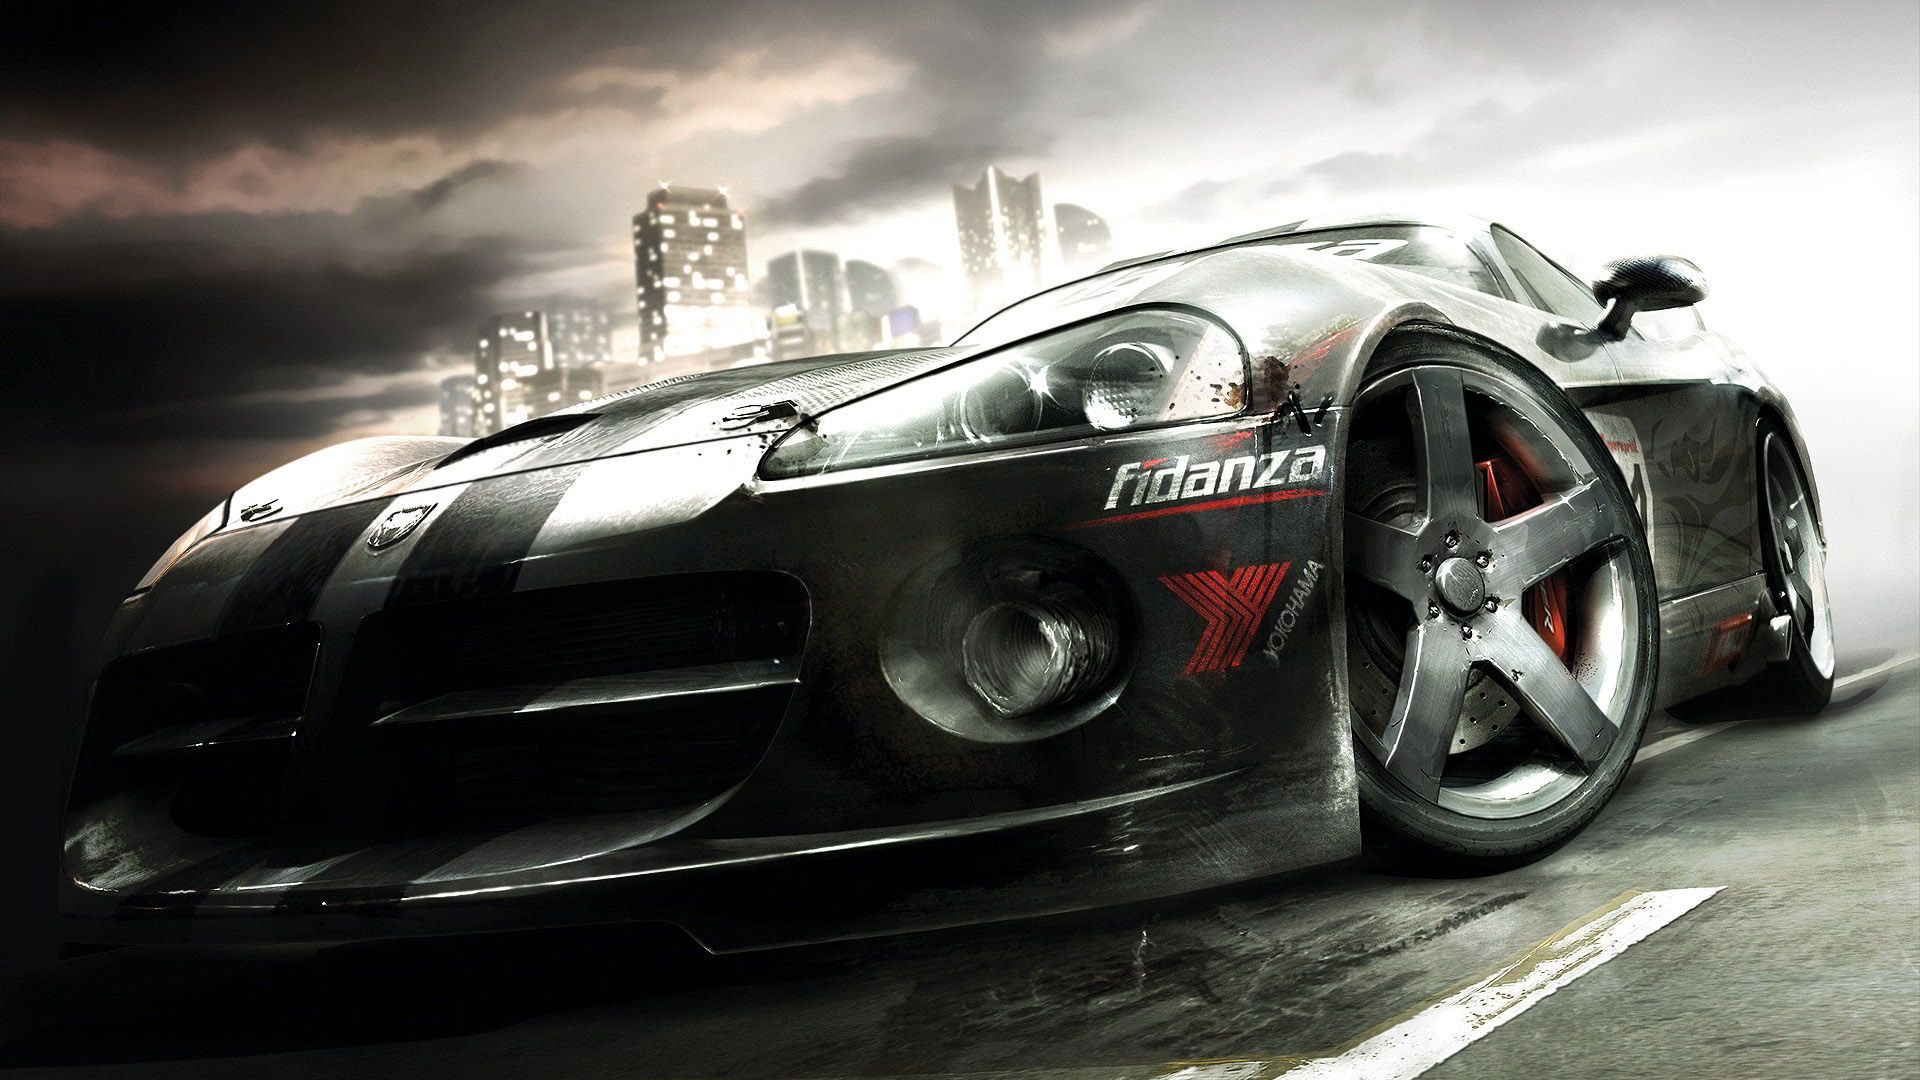 Find a hd wallpaper for your mac, windows, desktop or android device. New Car Hd Wallpaper For Laptop